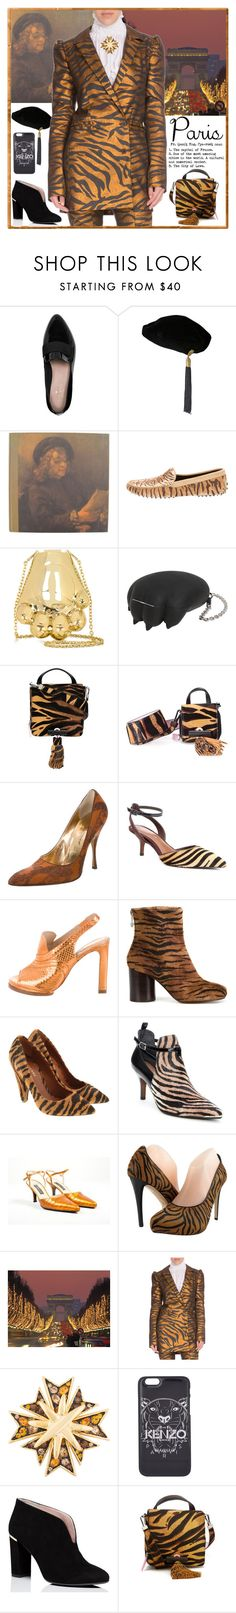 """""""I Love Paris in the Fall"""" by yours-styling-best-friend ❤ liked on Polyvore featuring Kate Spade, Yves Saint Laurent, Tod's, Kenzo, Dolce&Gabbana, Donald J Pliner, Maison Margiela, Mulberry, Casadei and Jerome C. Rousseau"""